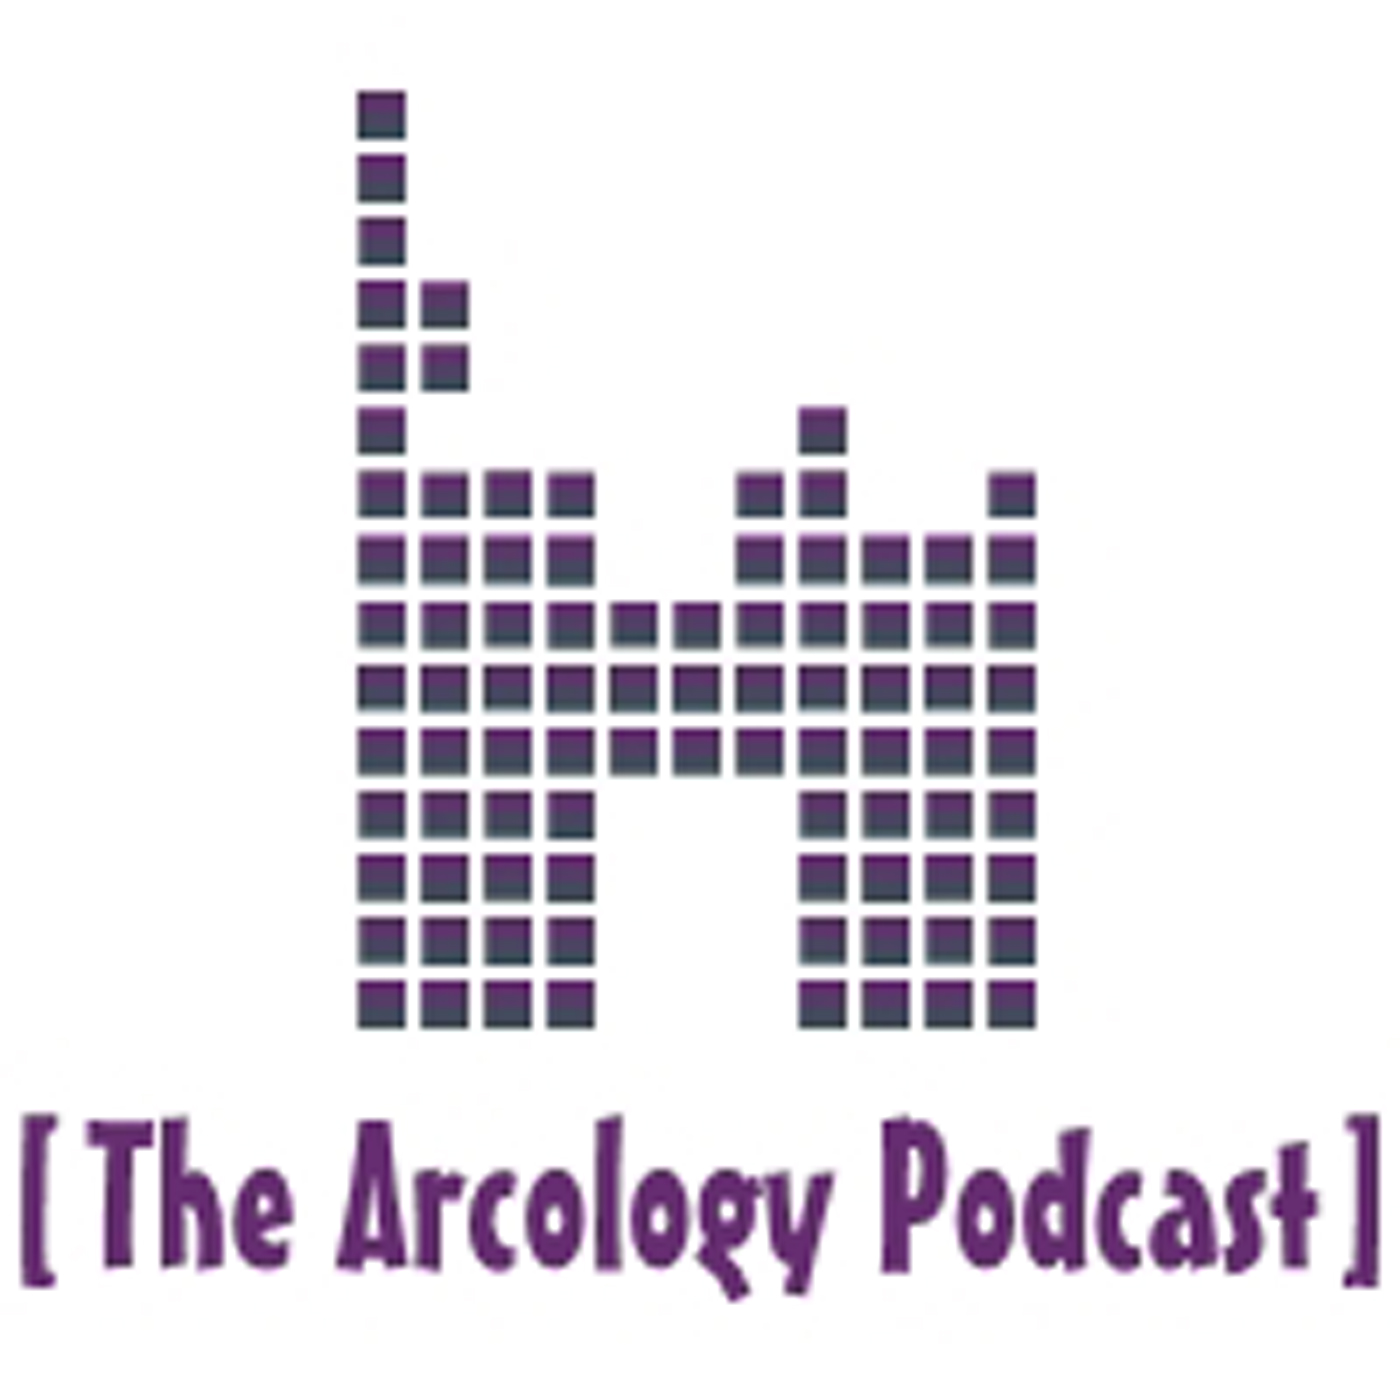 The Arcology Podcast logo